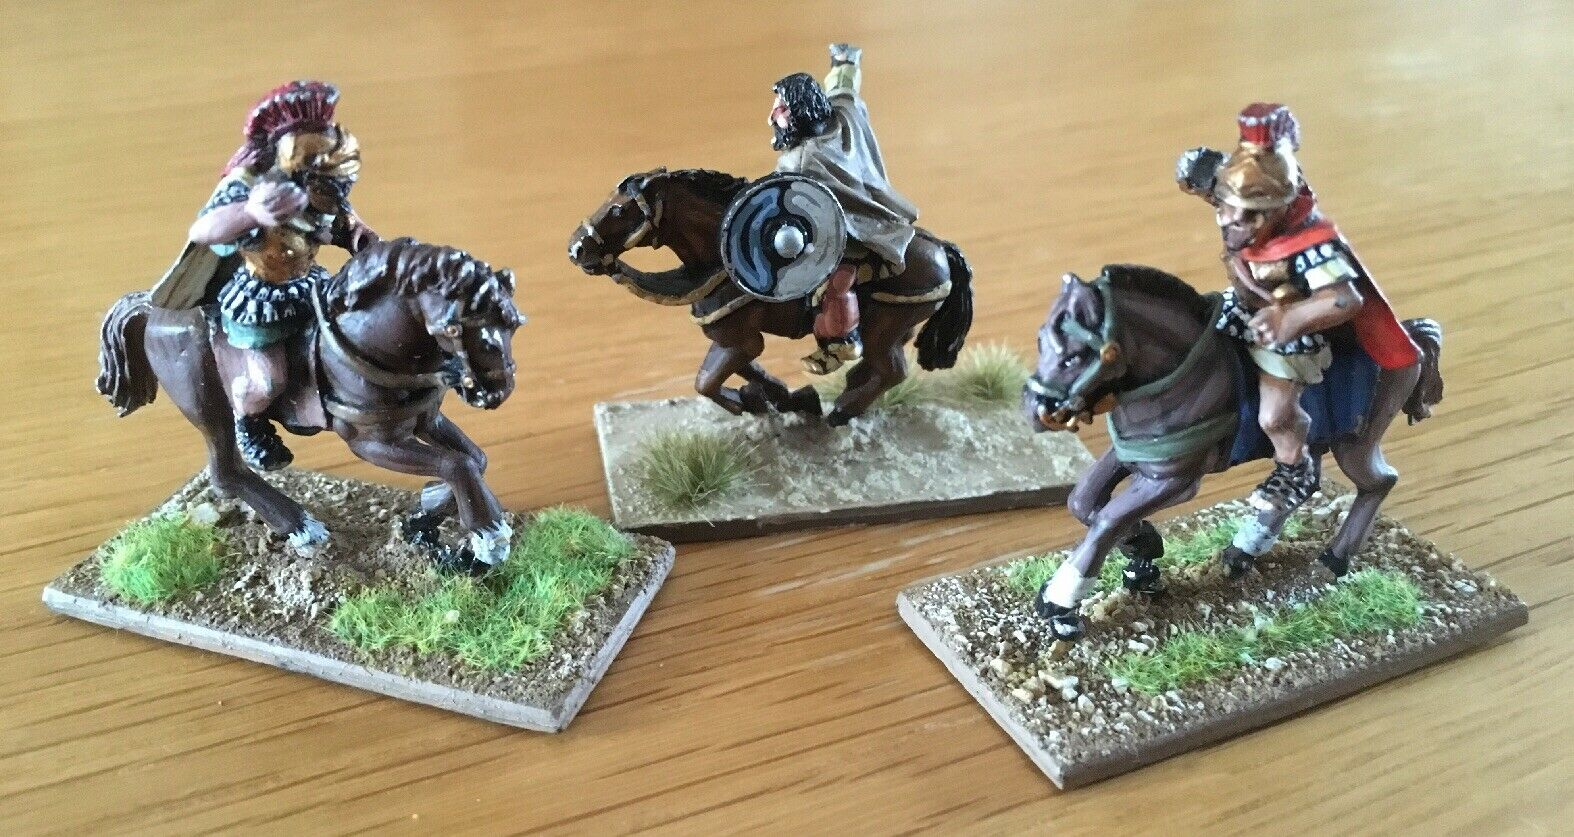 Citadel Knights Of Chaos Marauders Metal Miniatures Lot Of 3 Painted & Based